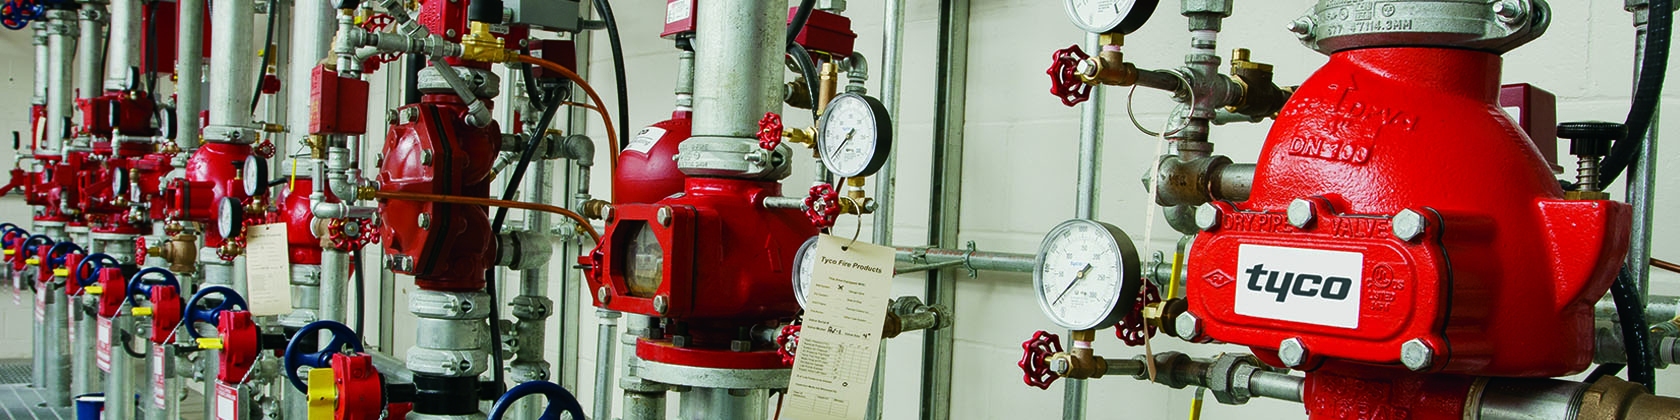 Tyco Fire Valves | Tyco Fire Protection Products